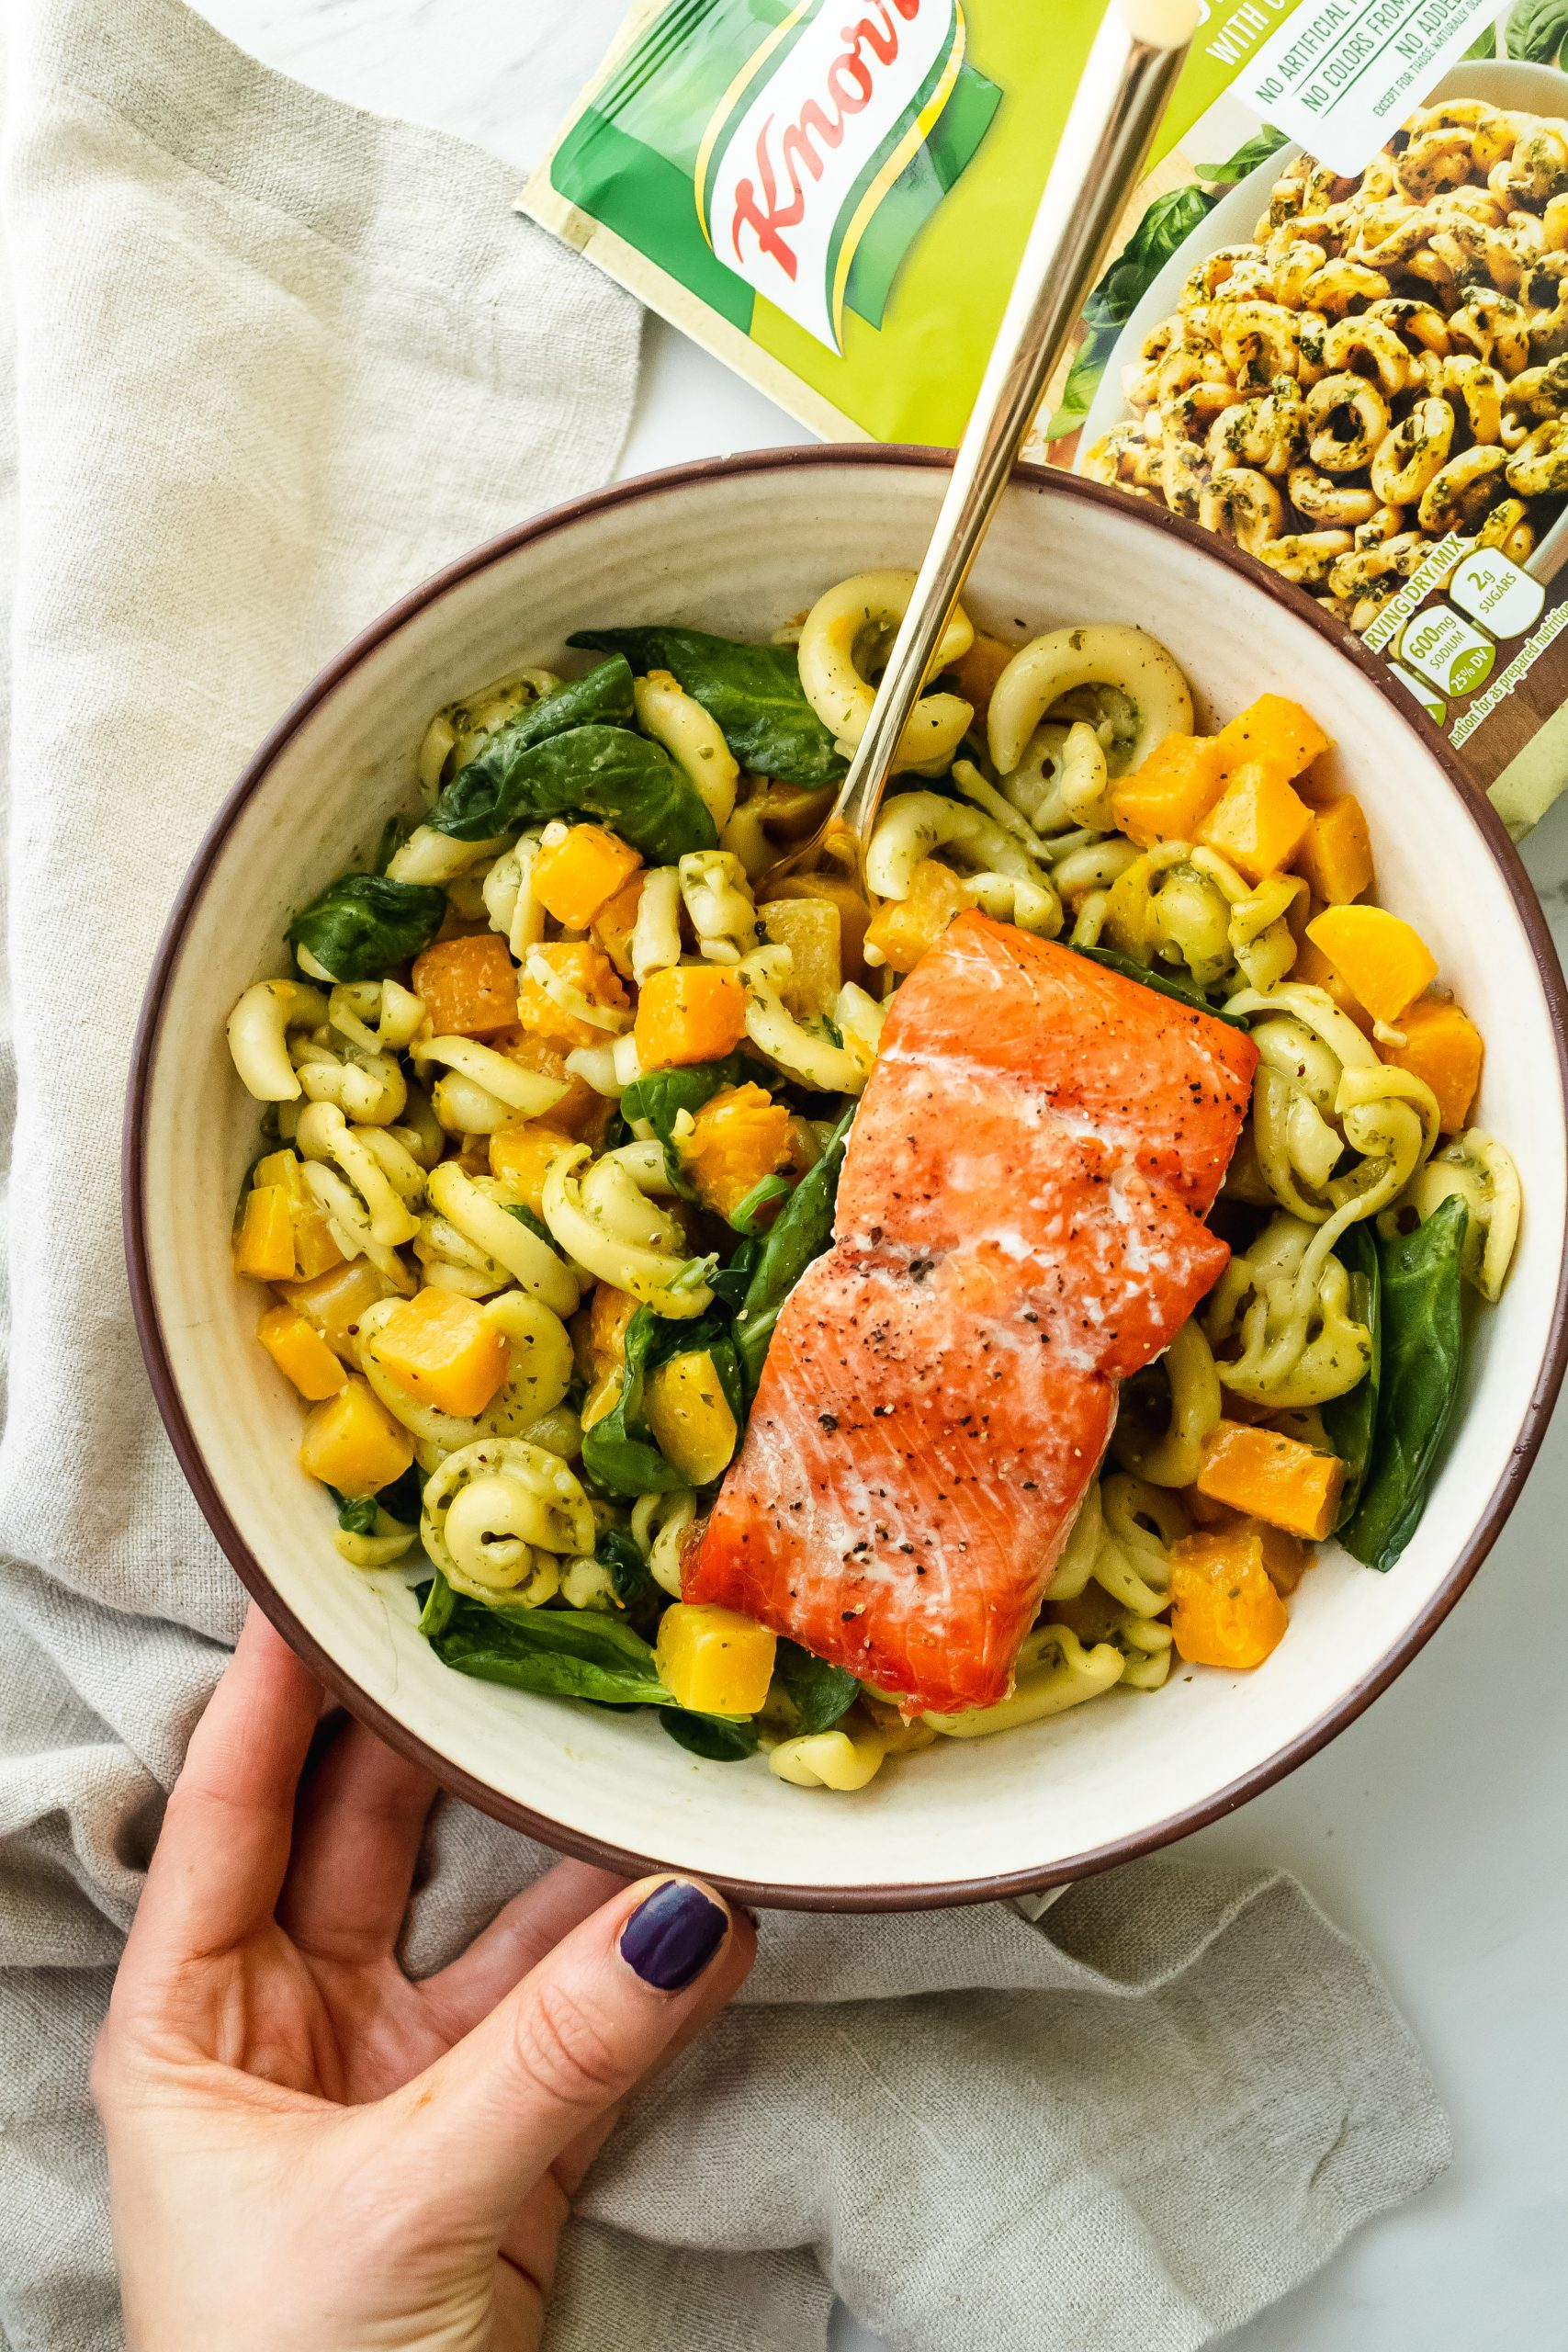 Roasted Garlic Pesto Pasta with Baked Salmon, Butternut Squash and Spinach